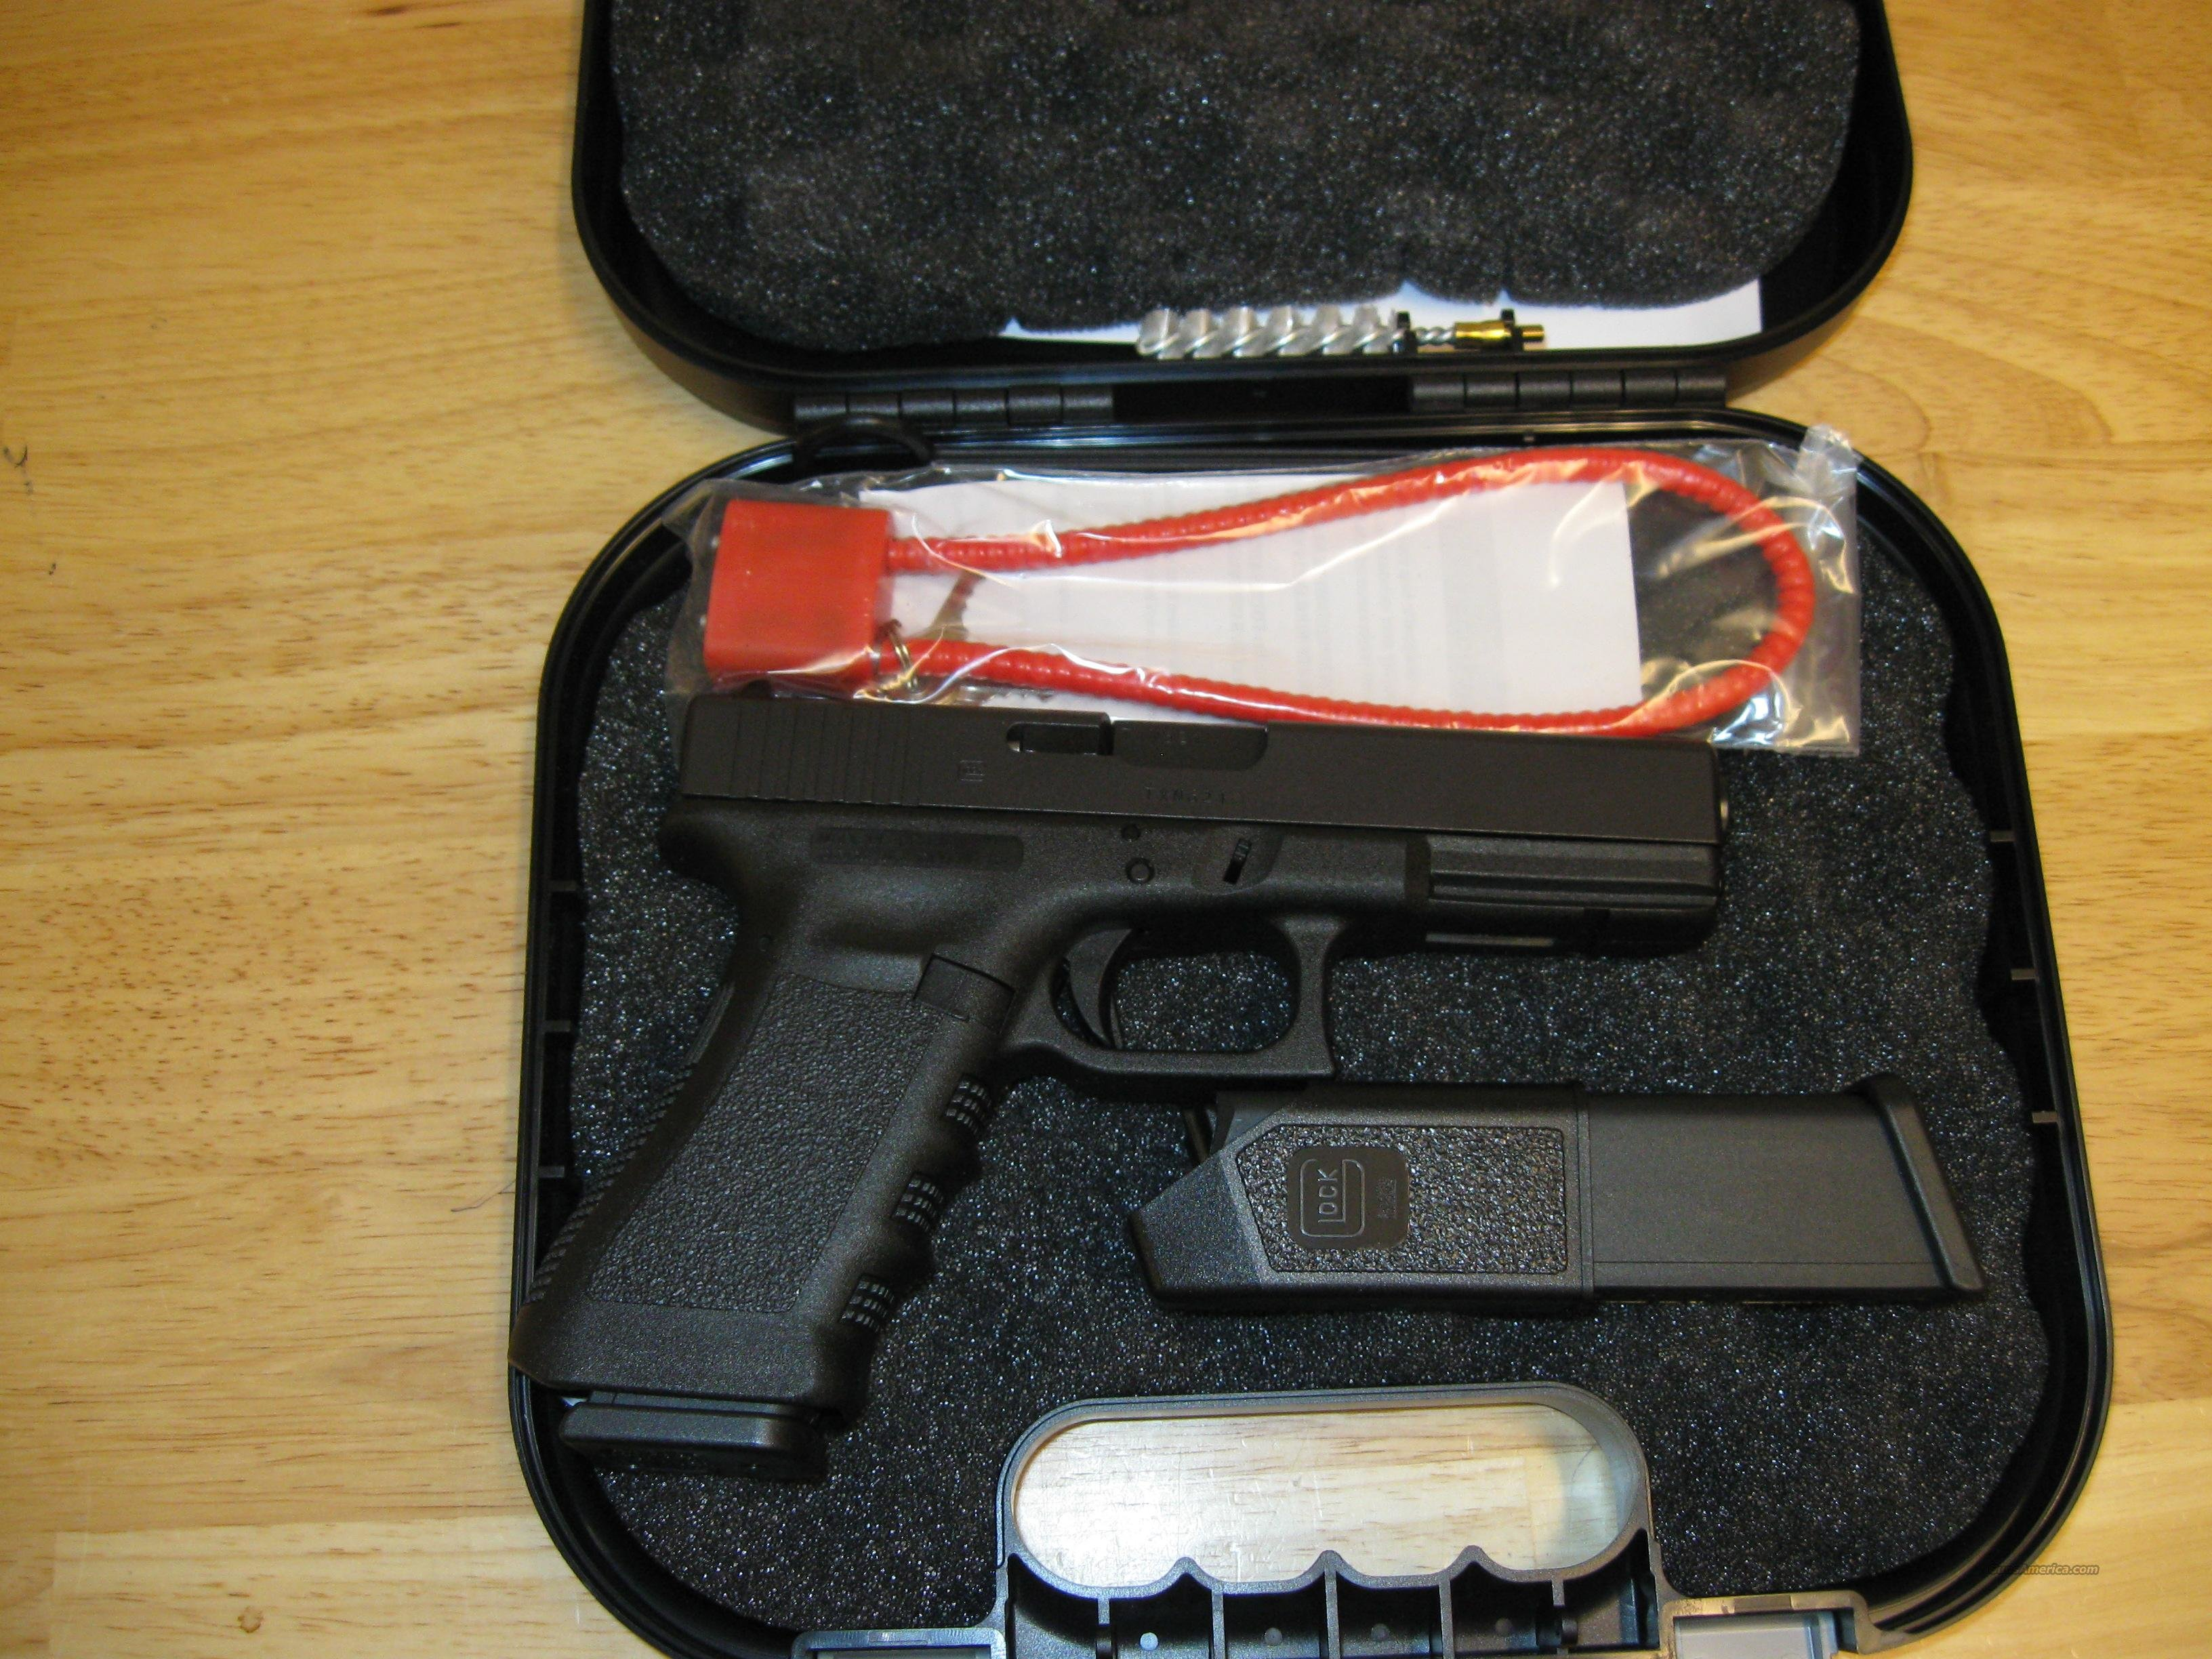 Glock 17 Standard Pistol PI1750203, 9mm, 4.49 in, Polymer Grip, Black Finish, Fixed Sights, 17 Rd  Guns > Pistols > Glock Pistols > 17